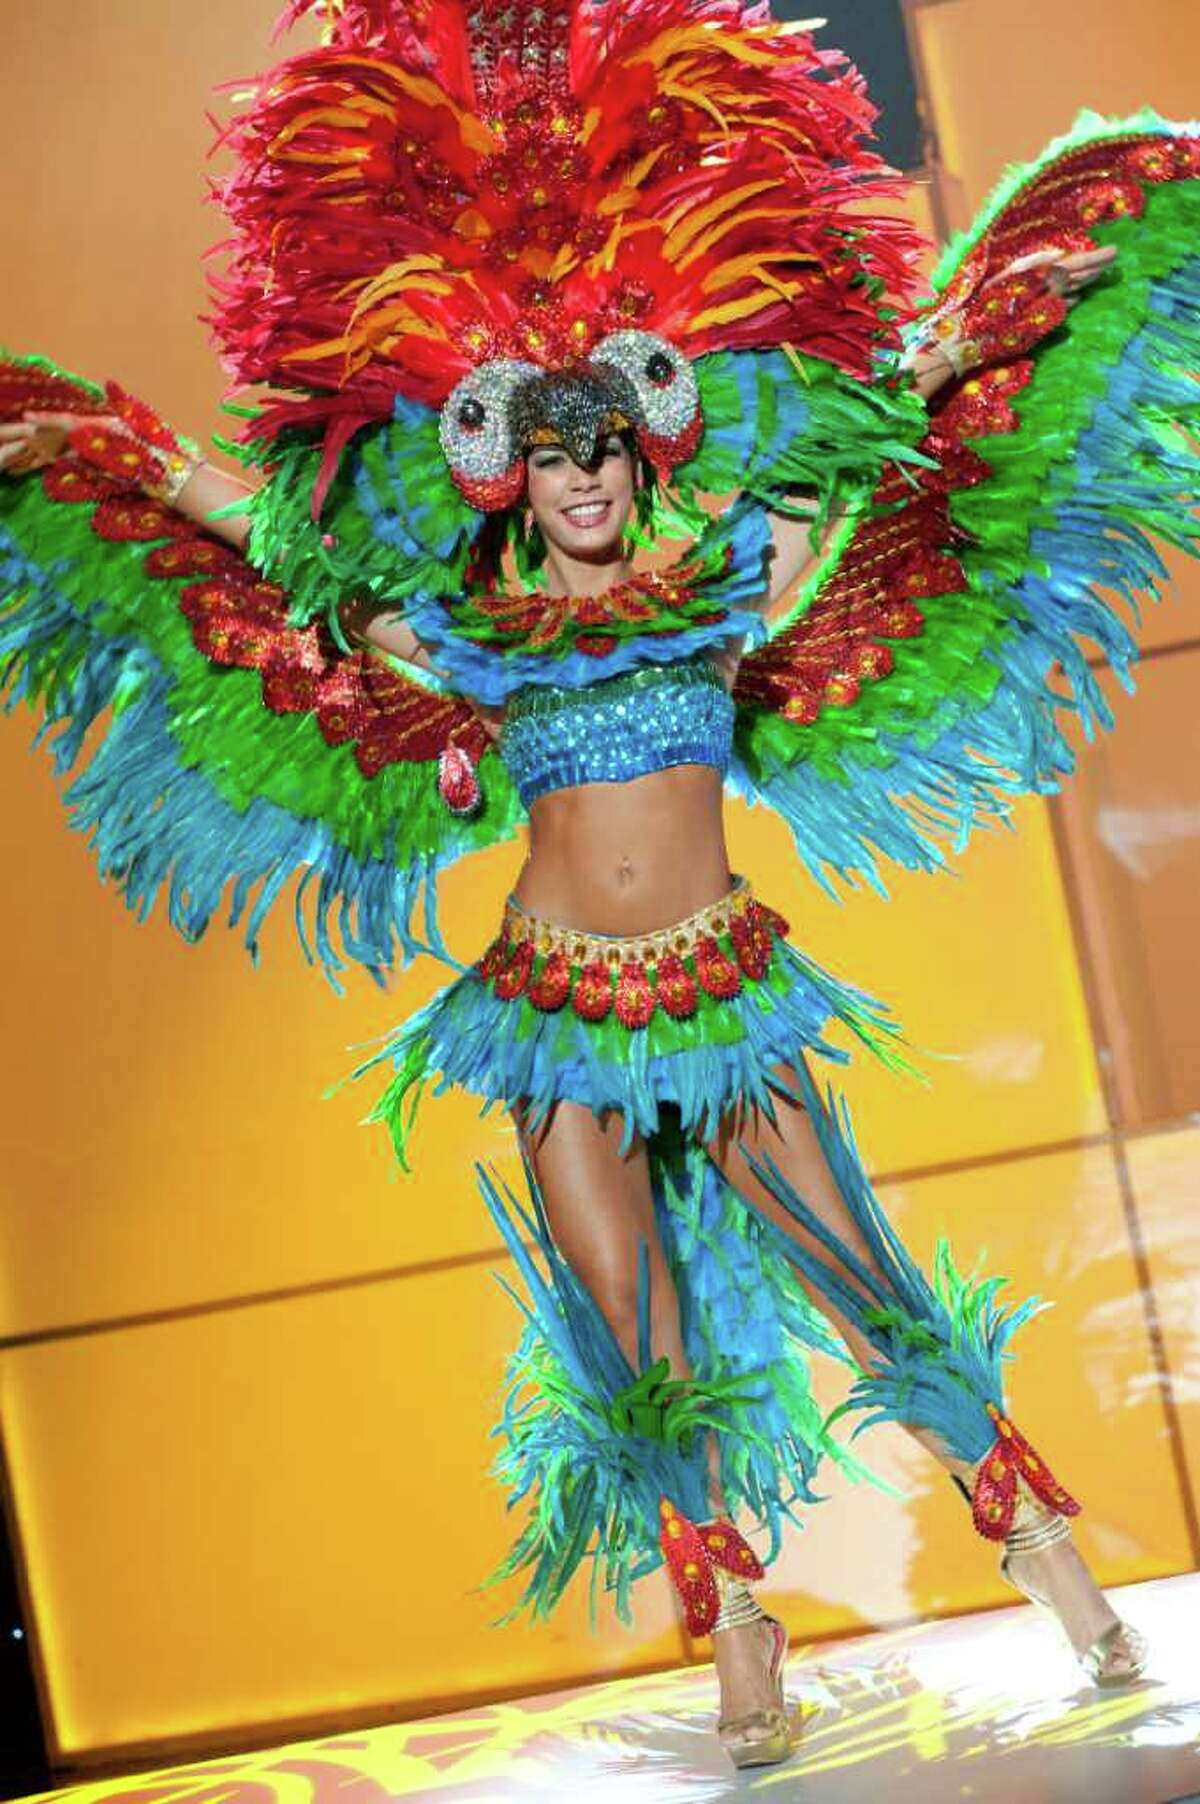 Miss Bolivia 2011, Olivia Pinheiro pre-tapes in her National Costume onstage at Credicard Hall on September 7, 2011. She is preparing to compete in the 2011 MISS UNIVERSE® Competition on September 12 at 9:00 p.m. ET broadcast LIVE on NBC from Credicard Hall in São Paulo, Brazil.